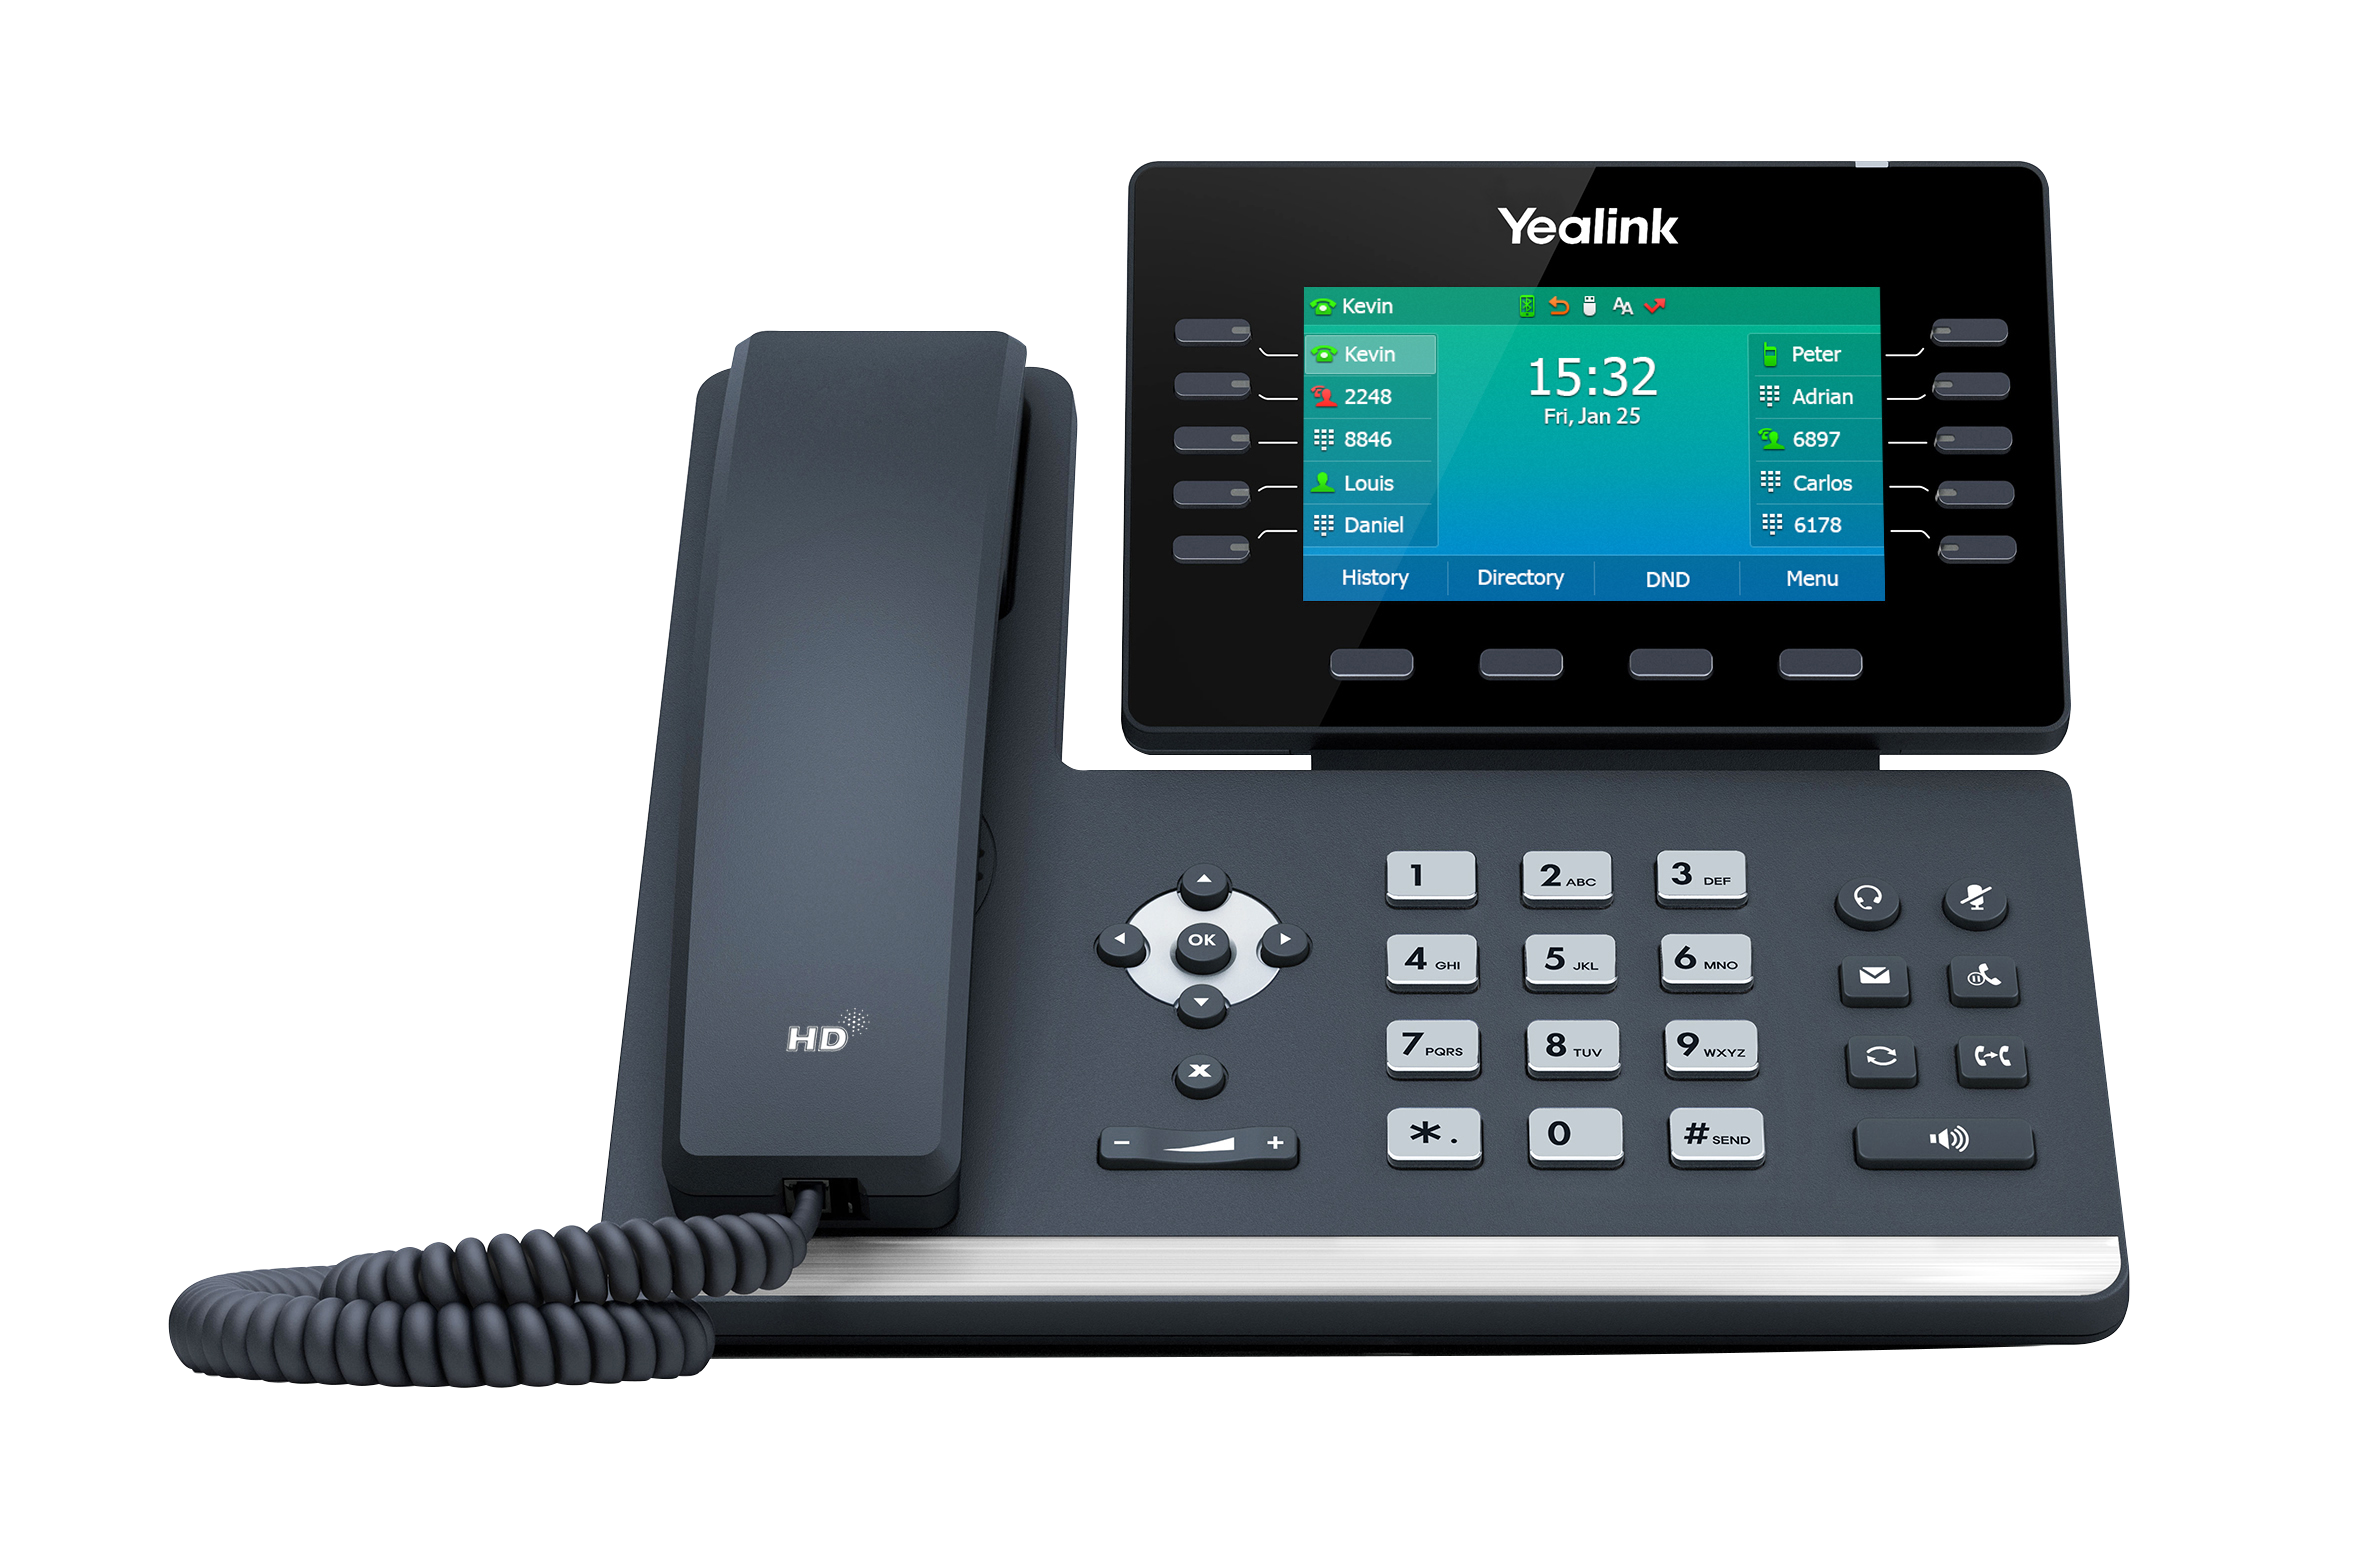 VoIP With Built In WiFi and Bluetooth